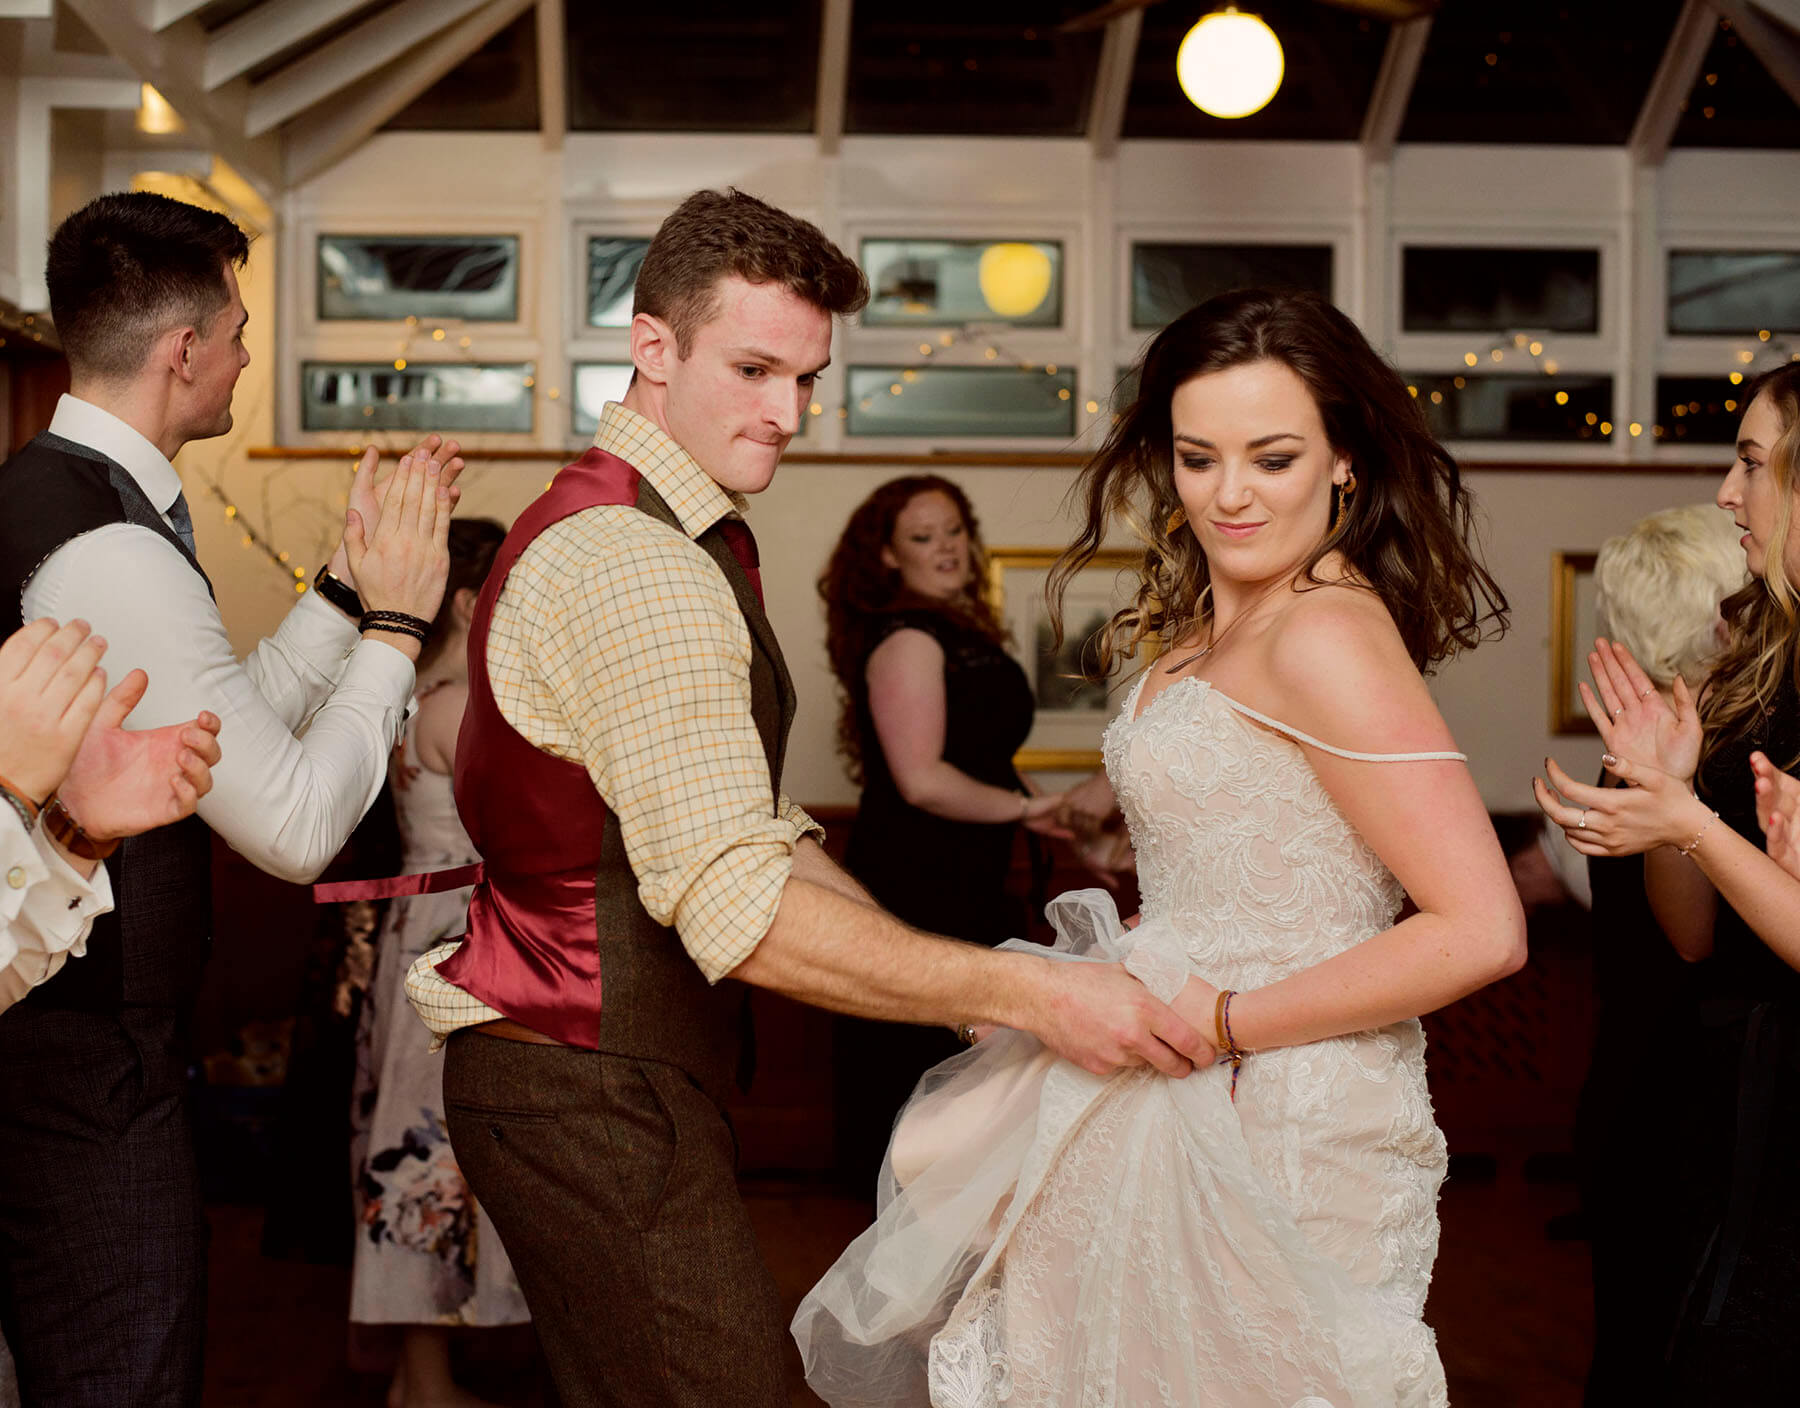 Bride and groom dancing a ceilidh holding hands